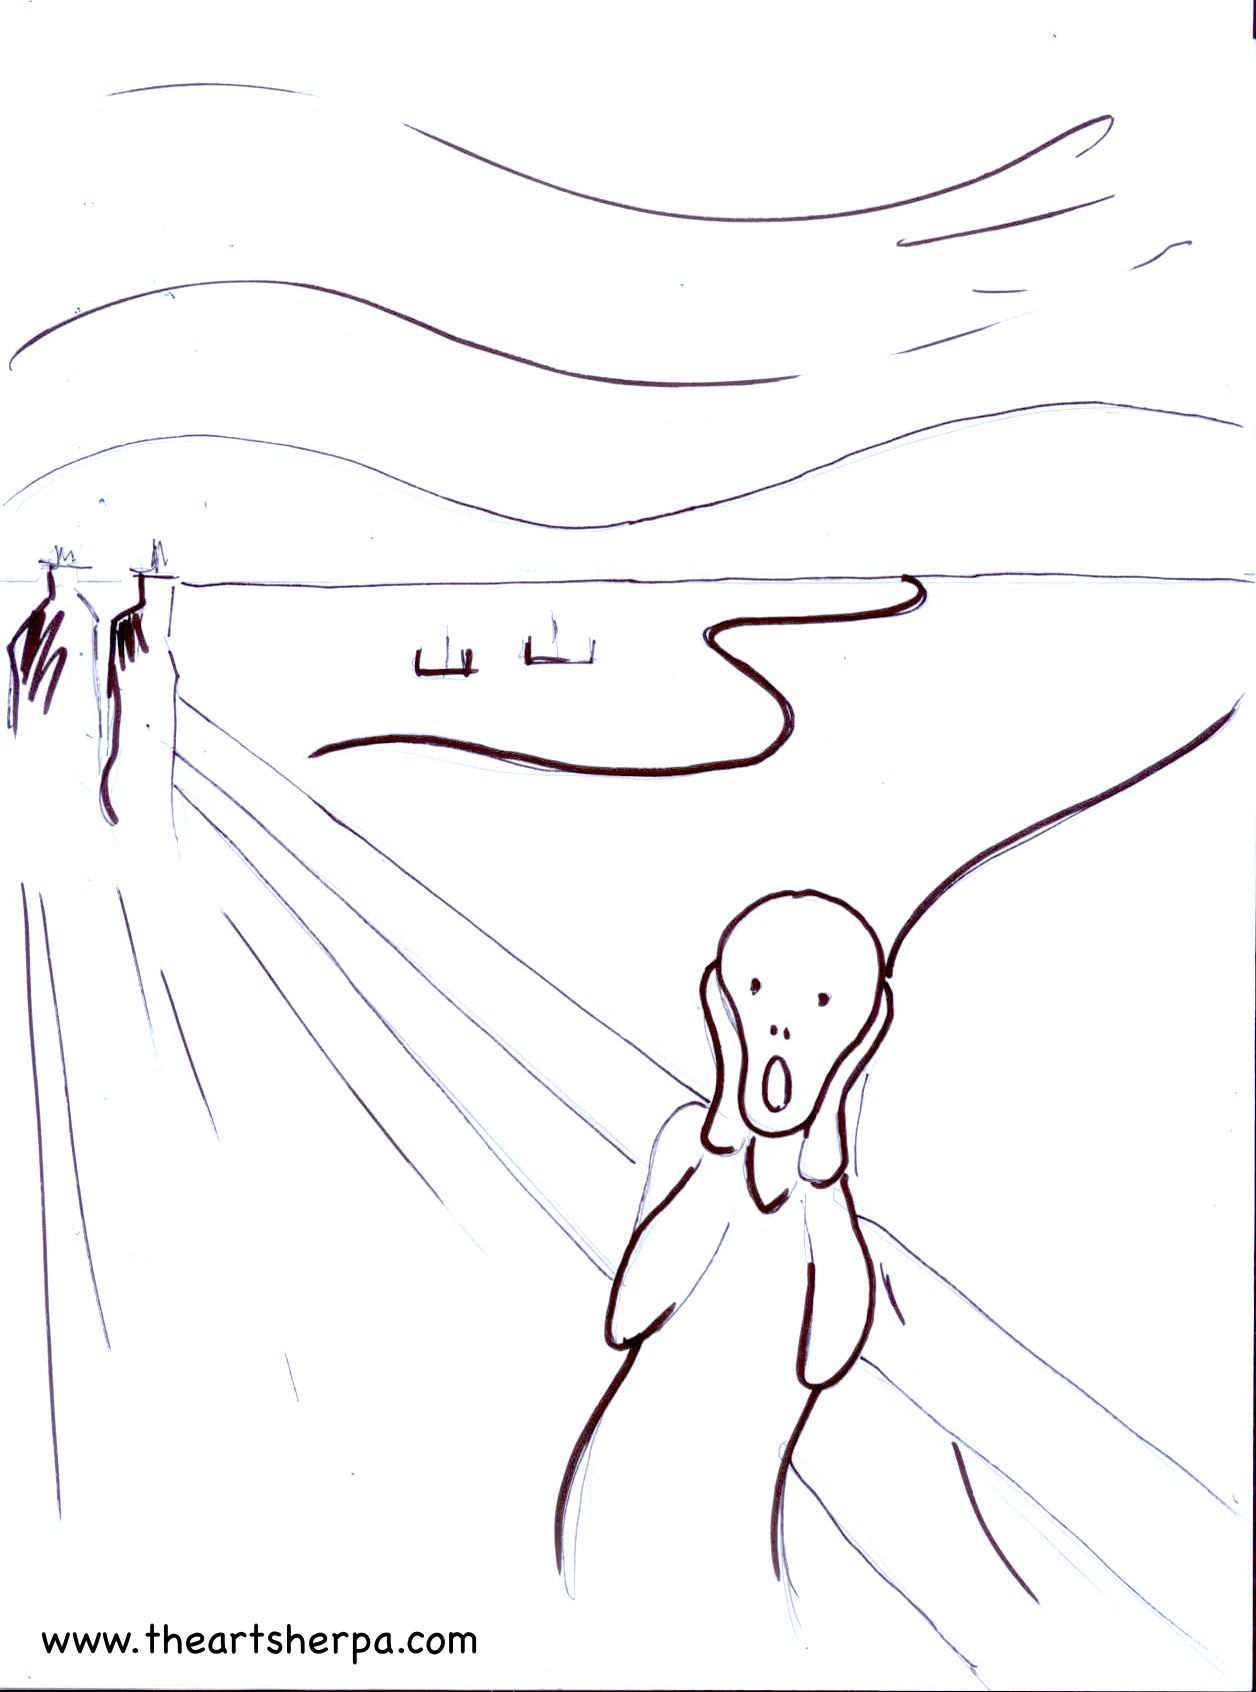 The Scream Treace Able Guide For Hartparty